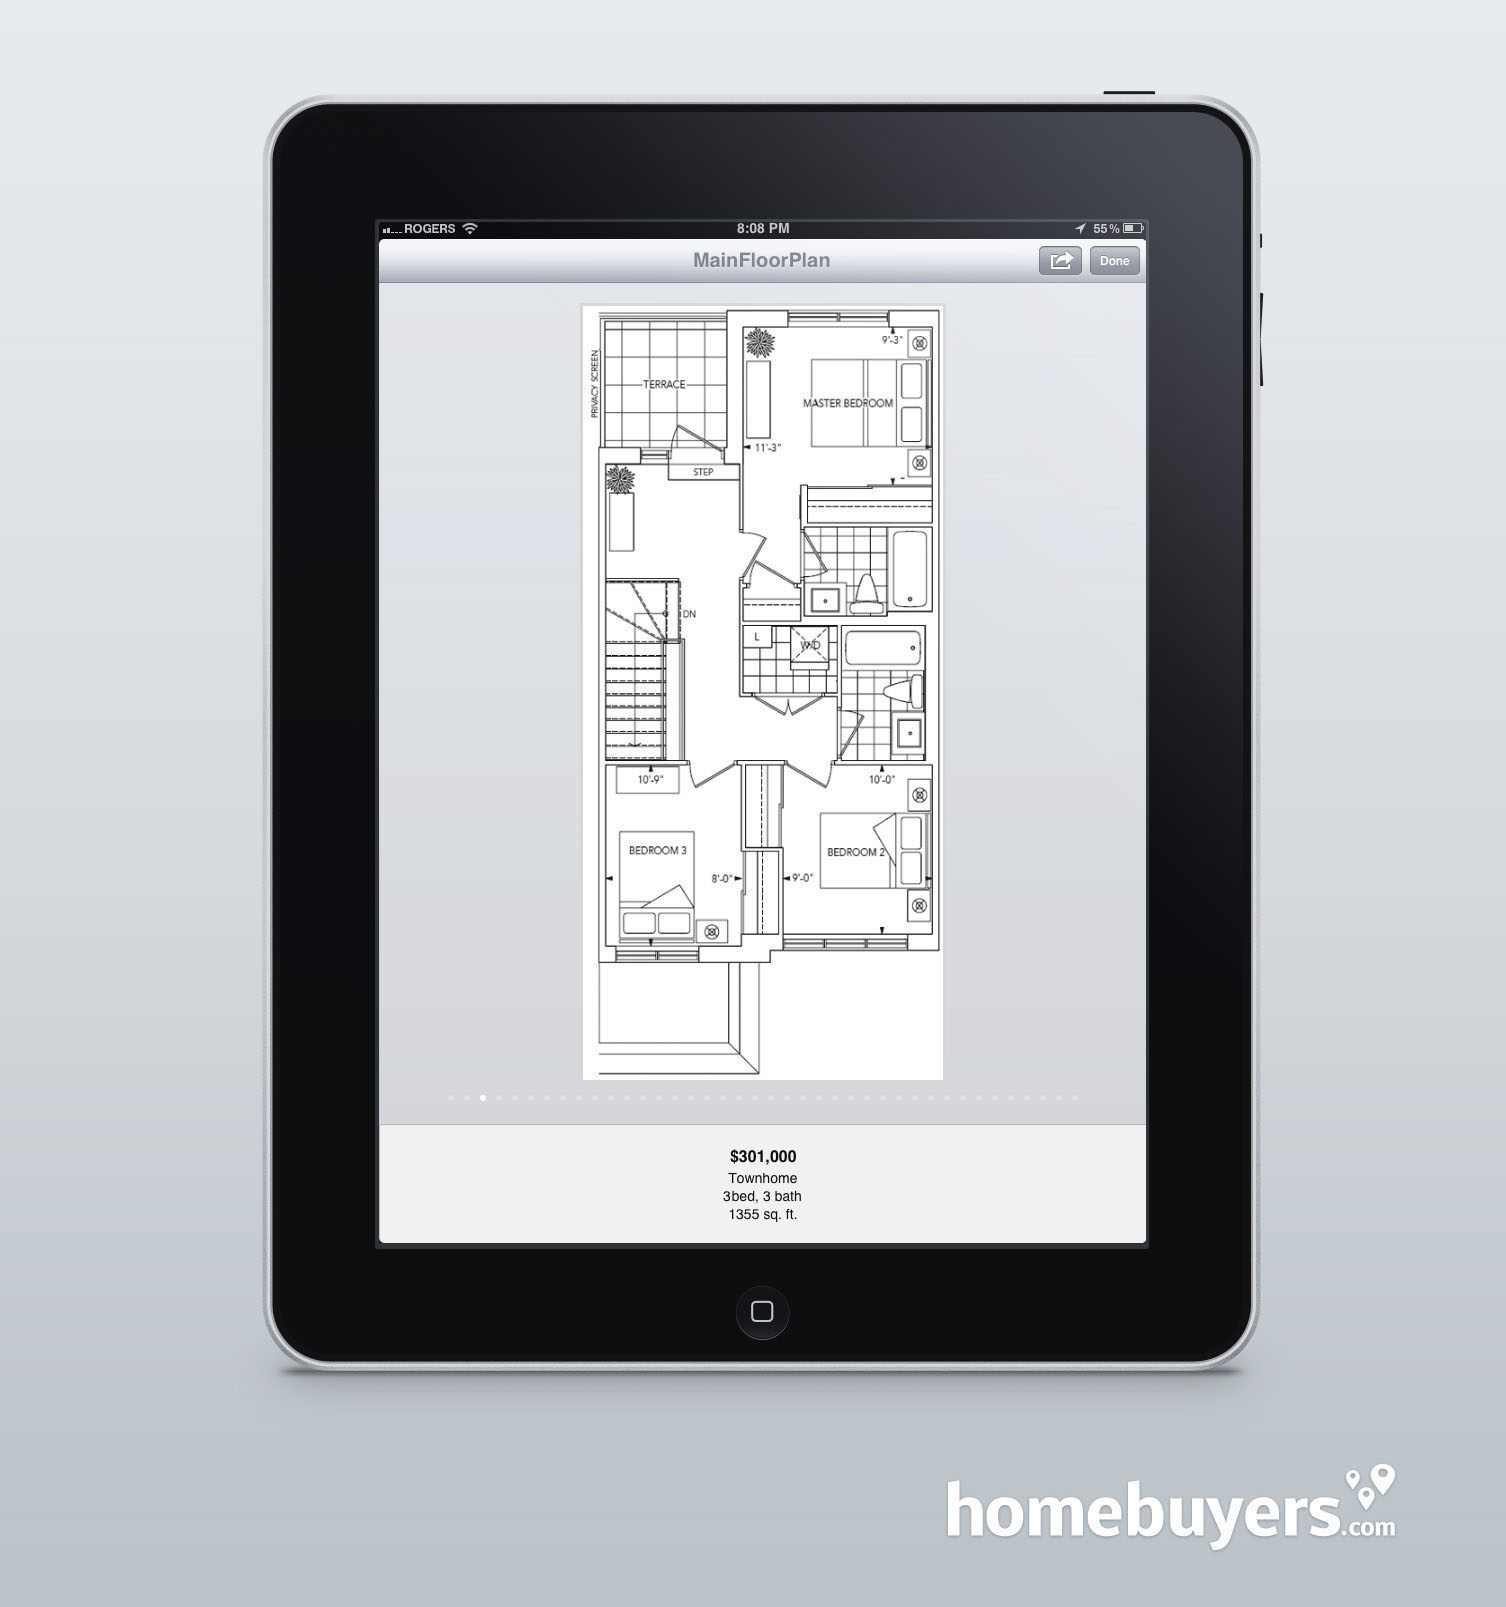 Beautiful Home Plans Ipad App Part - 9: Homebuyers Can View Floor Plans ...